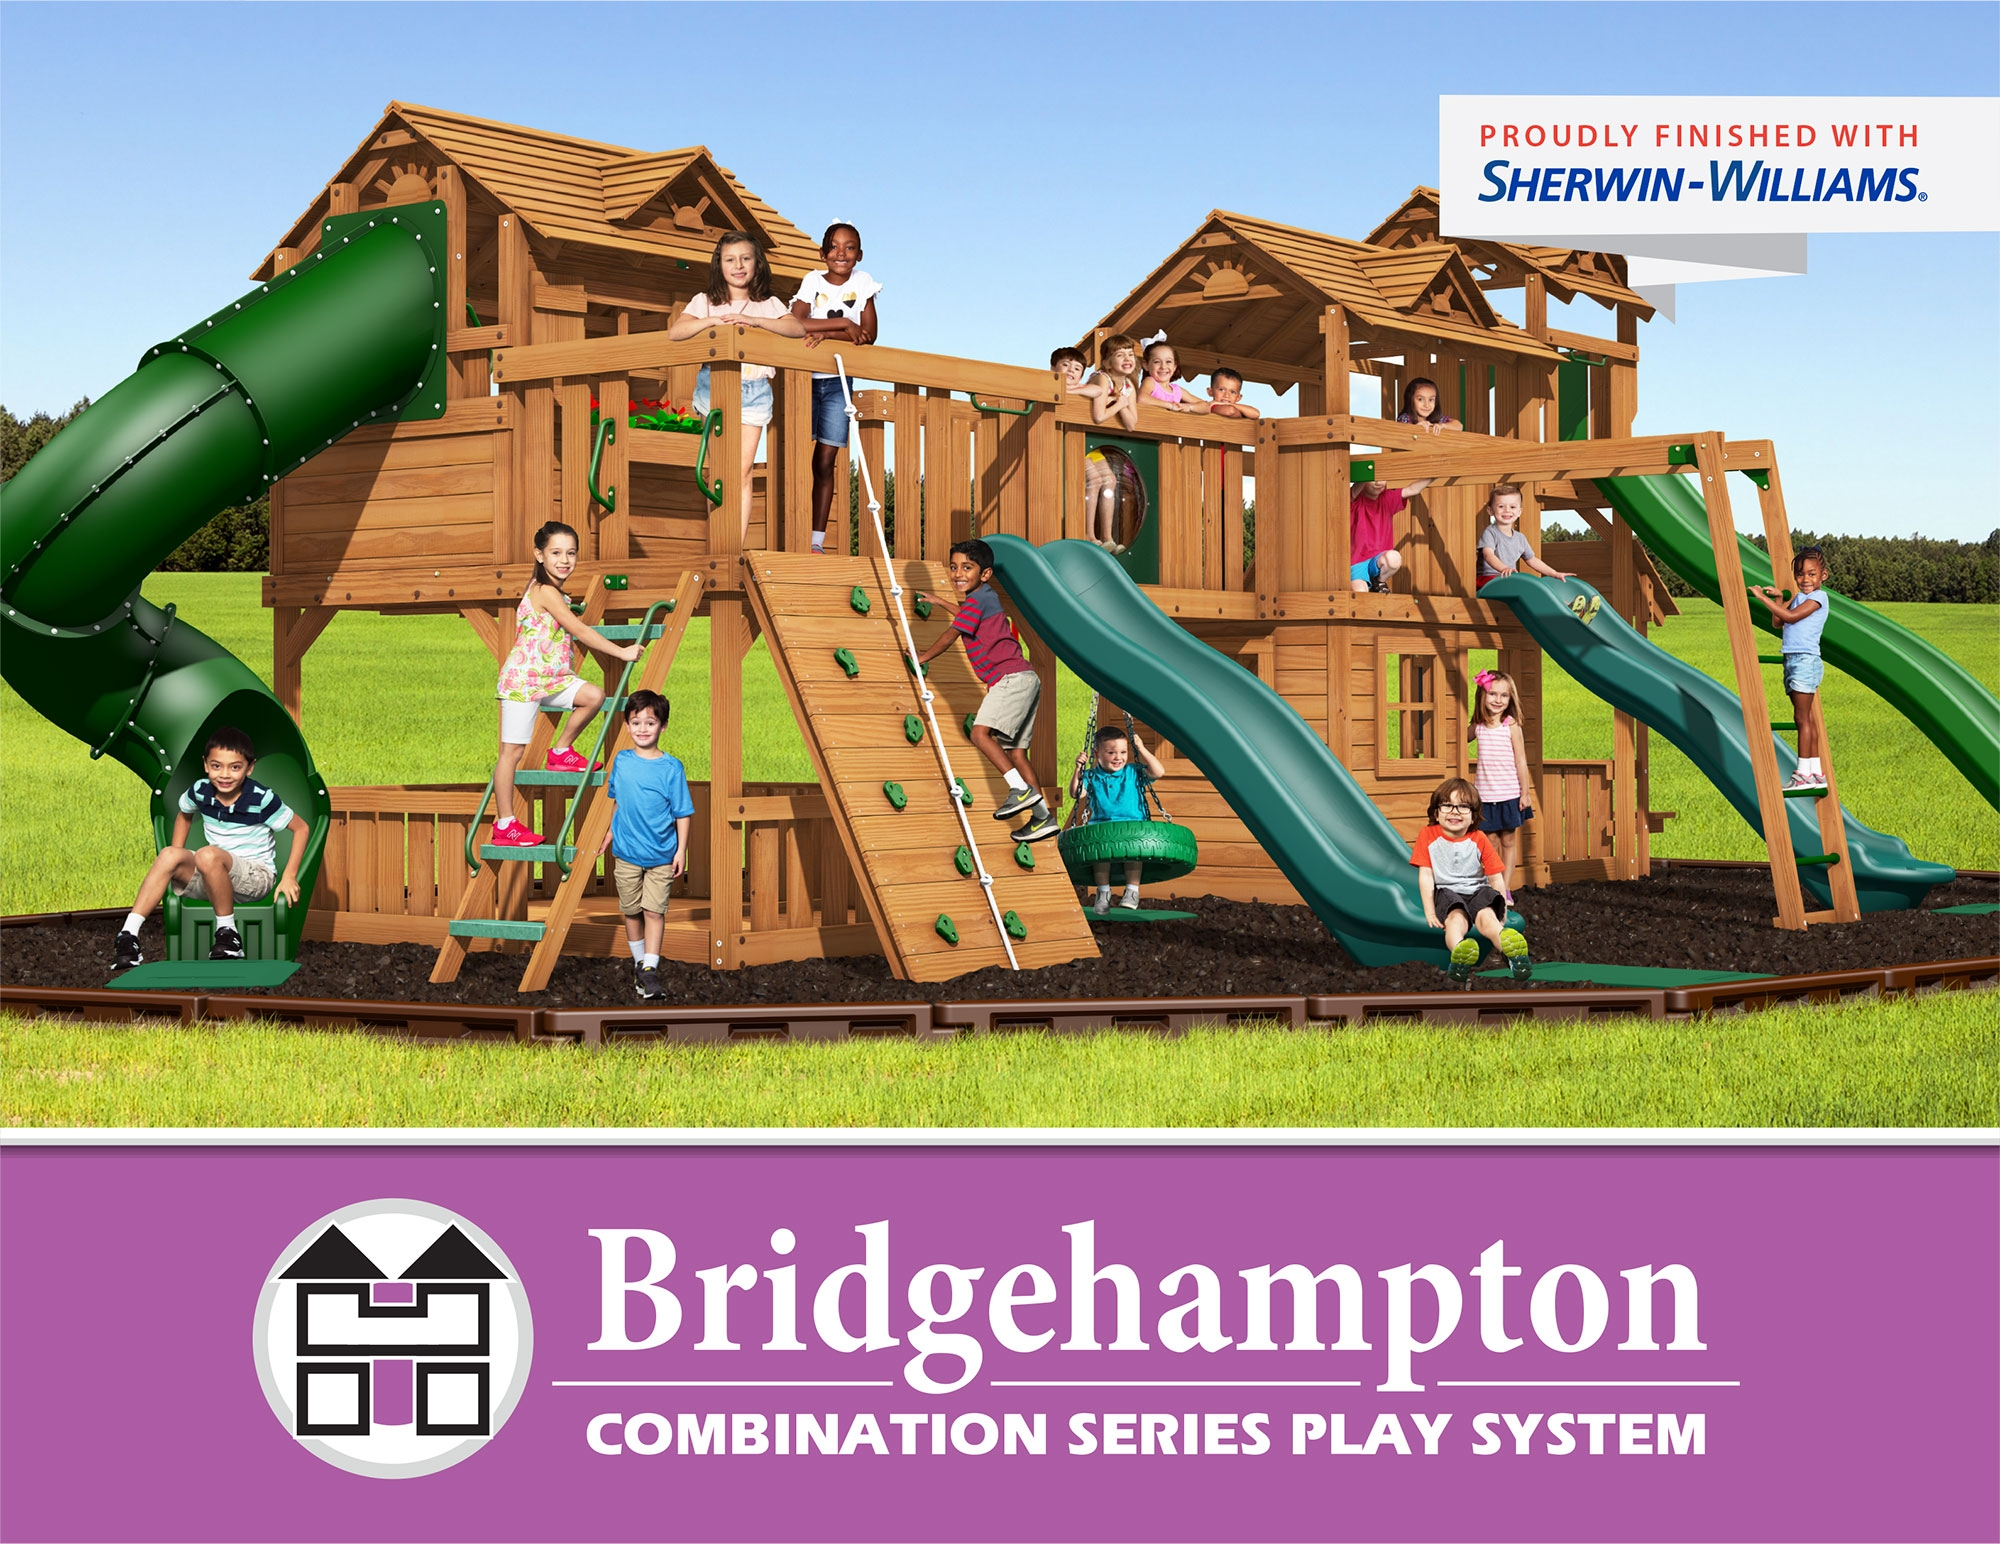 Bridgehampton Combination Swing Sets